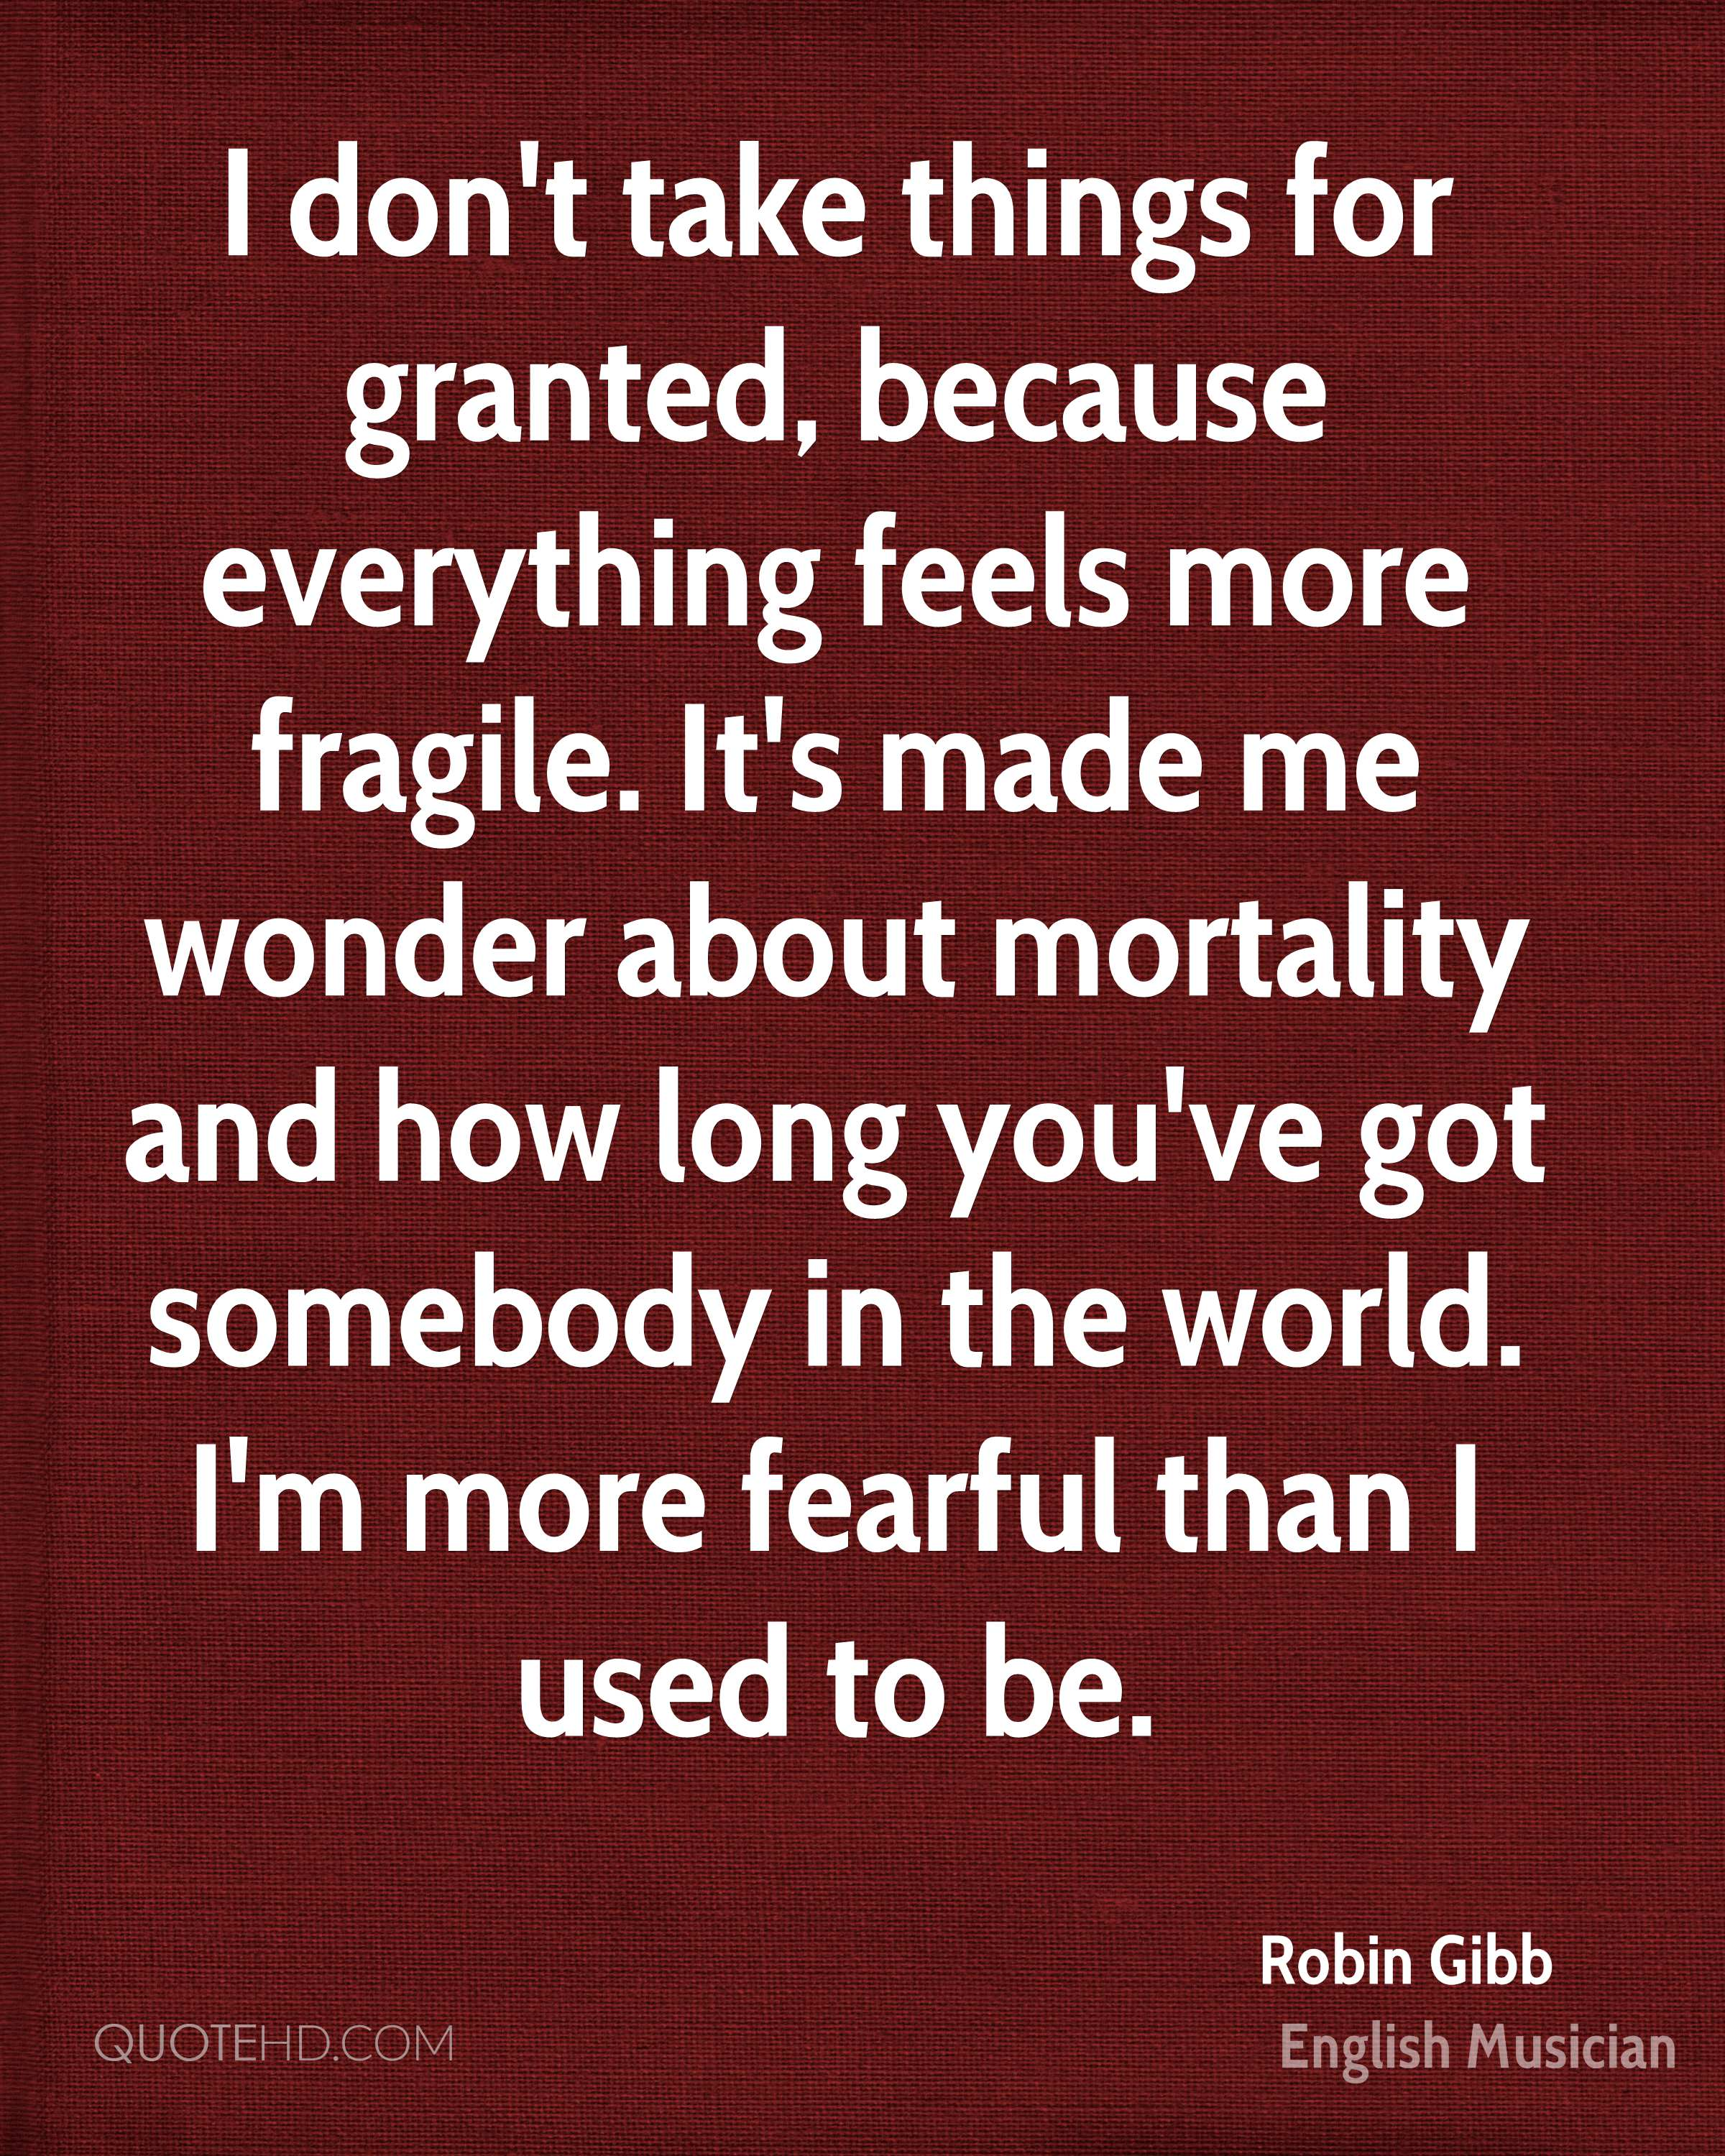 I don't take things for granted, because everything feels more fragile. It's made me wonder about mortality and how long you've got somebody in the world. I'm more fearful than I used to be.